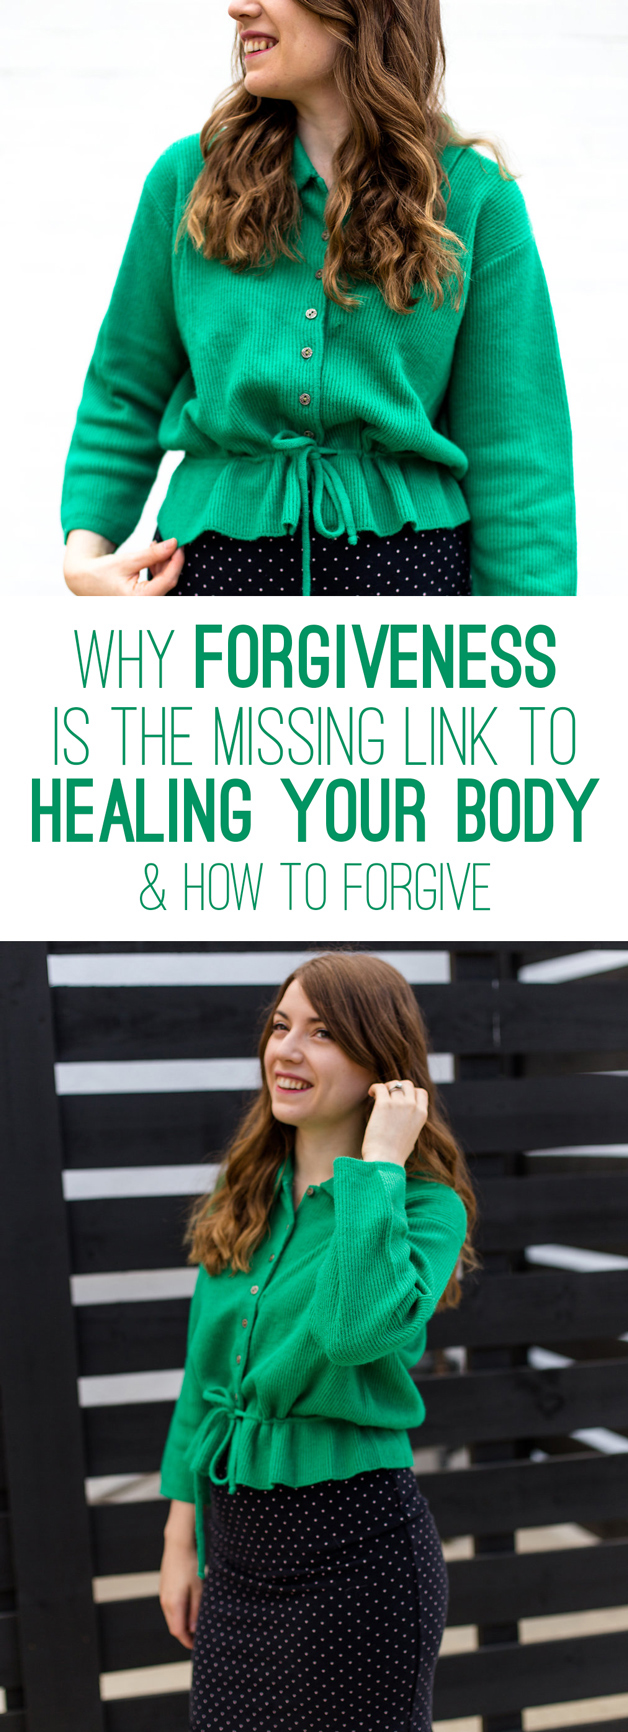 Why Forgiveness is The Missing Link To Healing Your Body